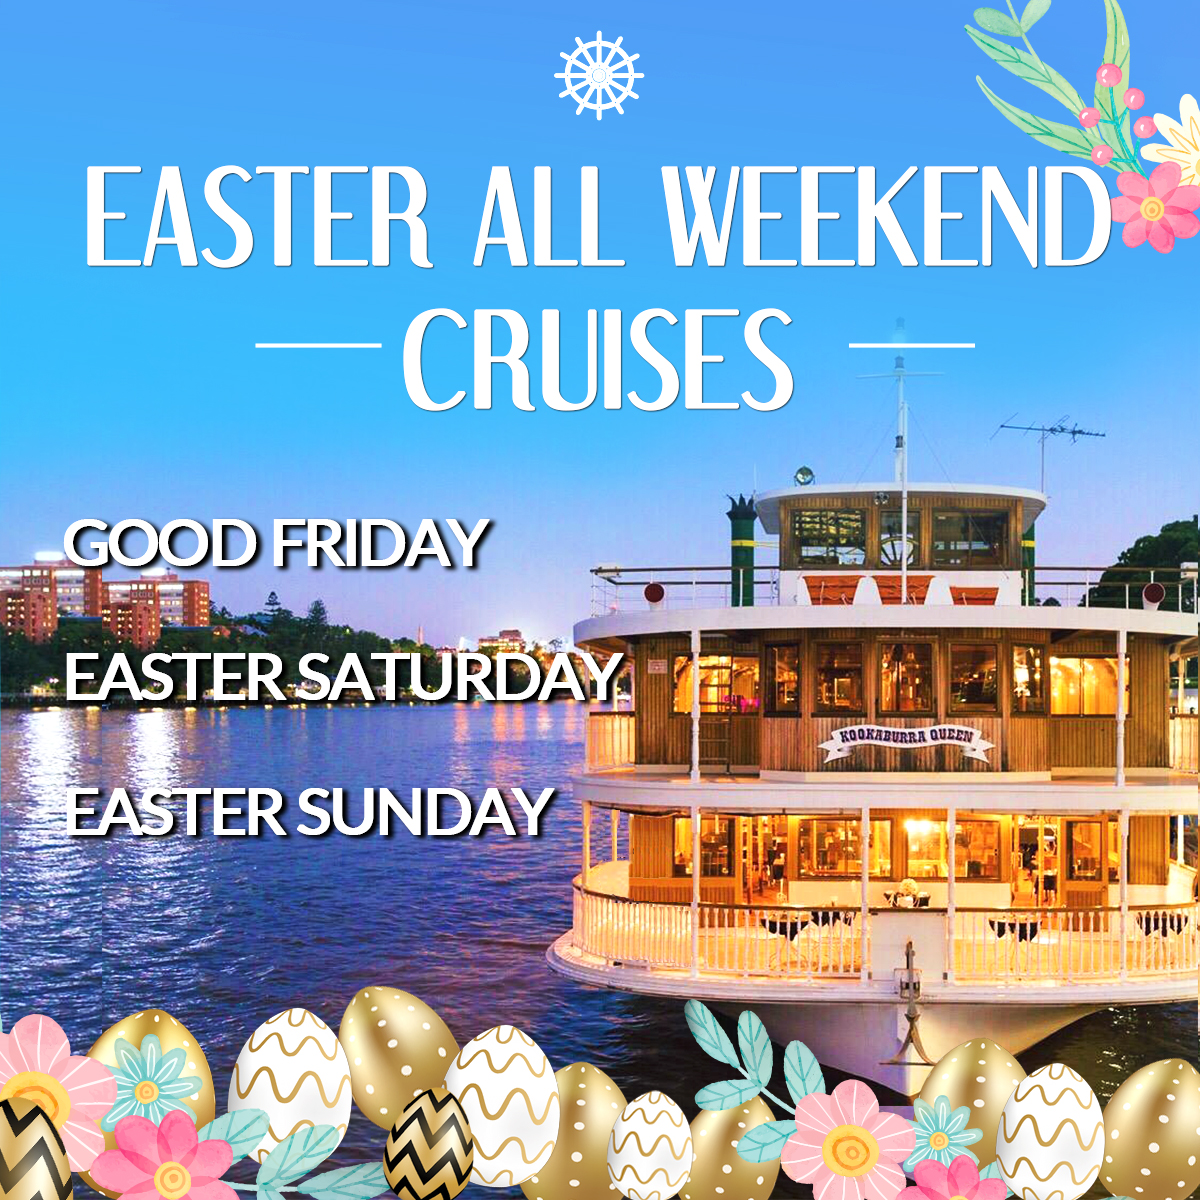 Easter Weekend Lunch Cruises               (Good Friday, Easter Saturday & Easter Sunday)